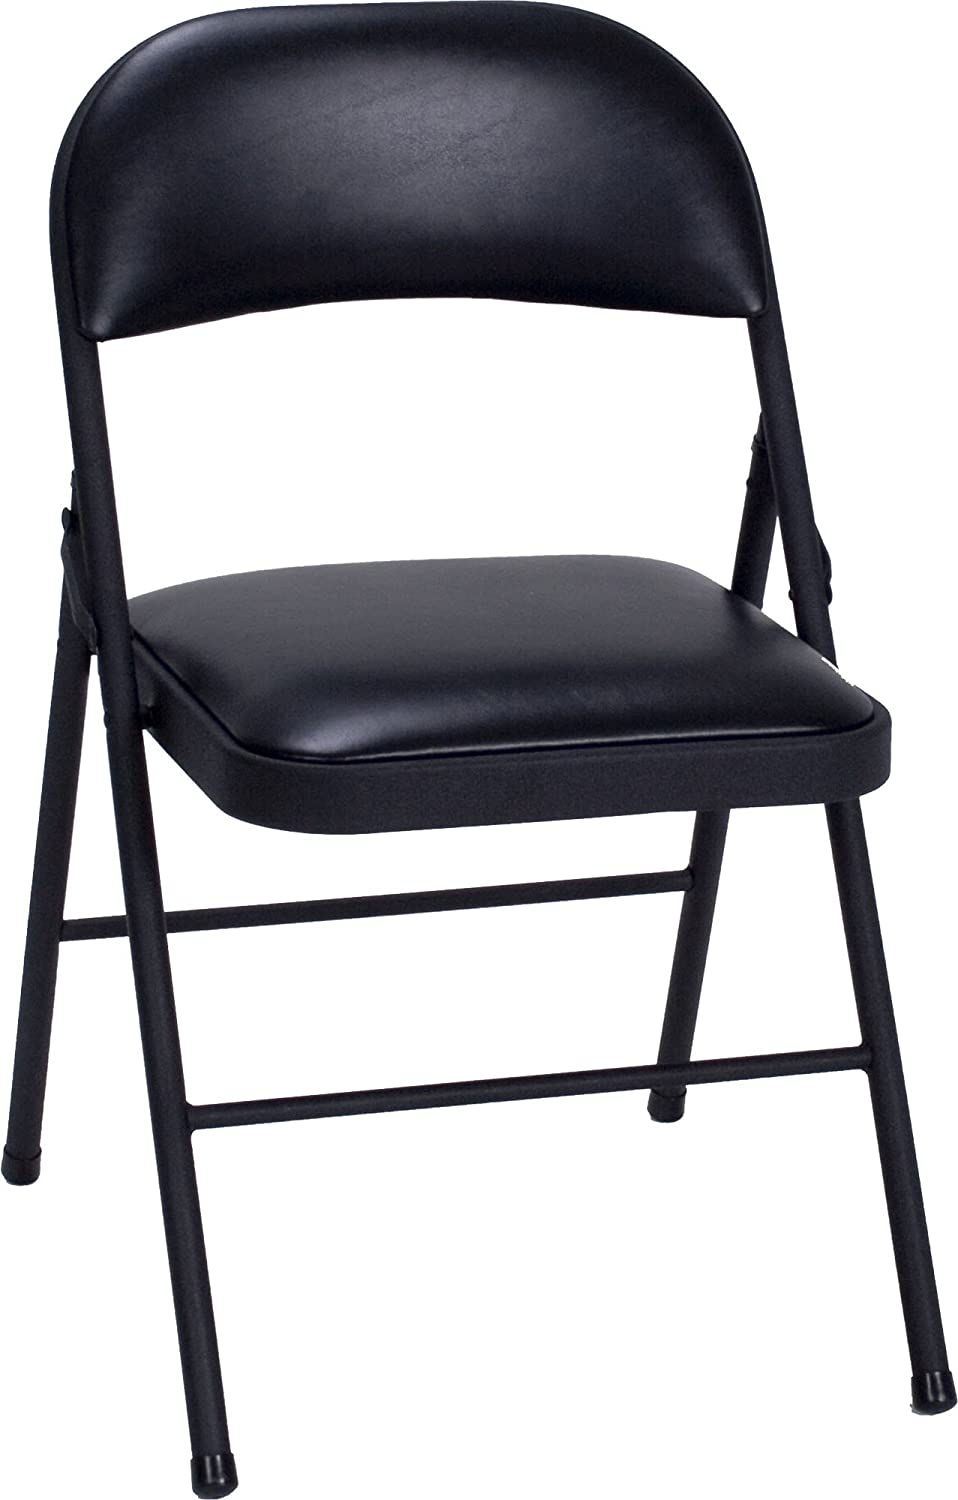 4 Pack Vinyl Folding Chair Set Black Cosco Fold Flat Steel